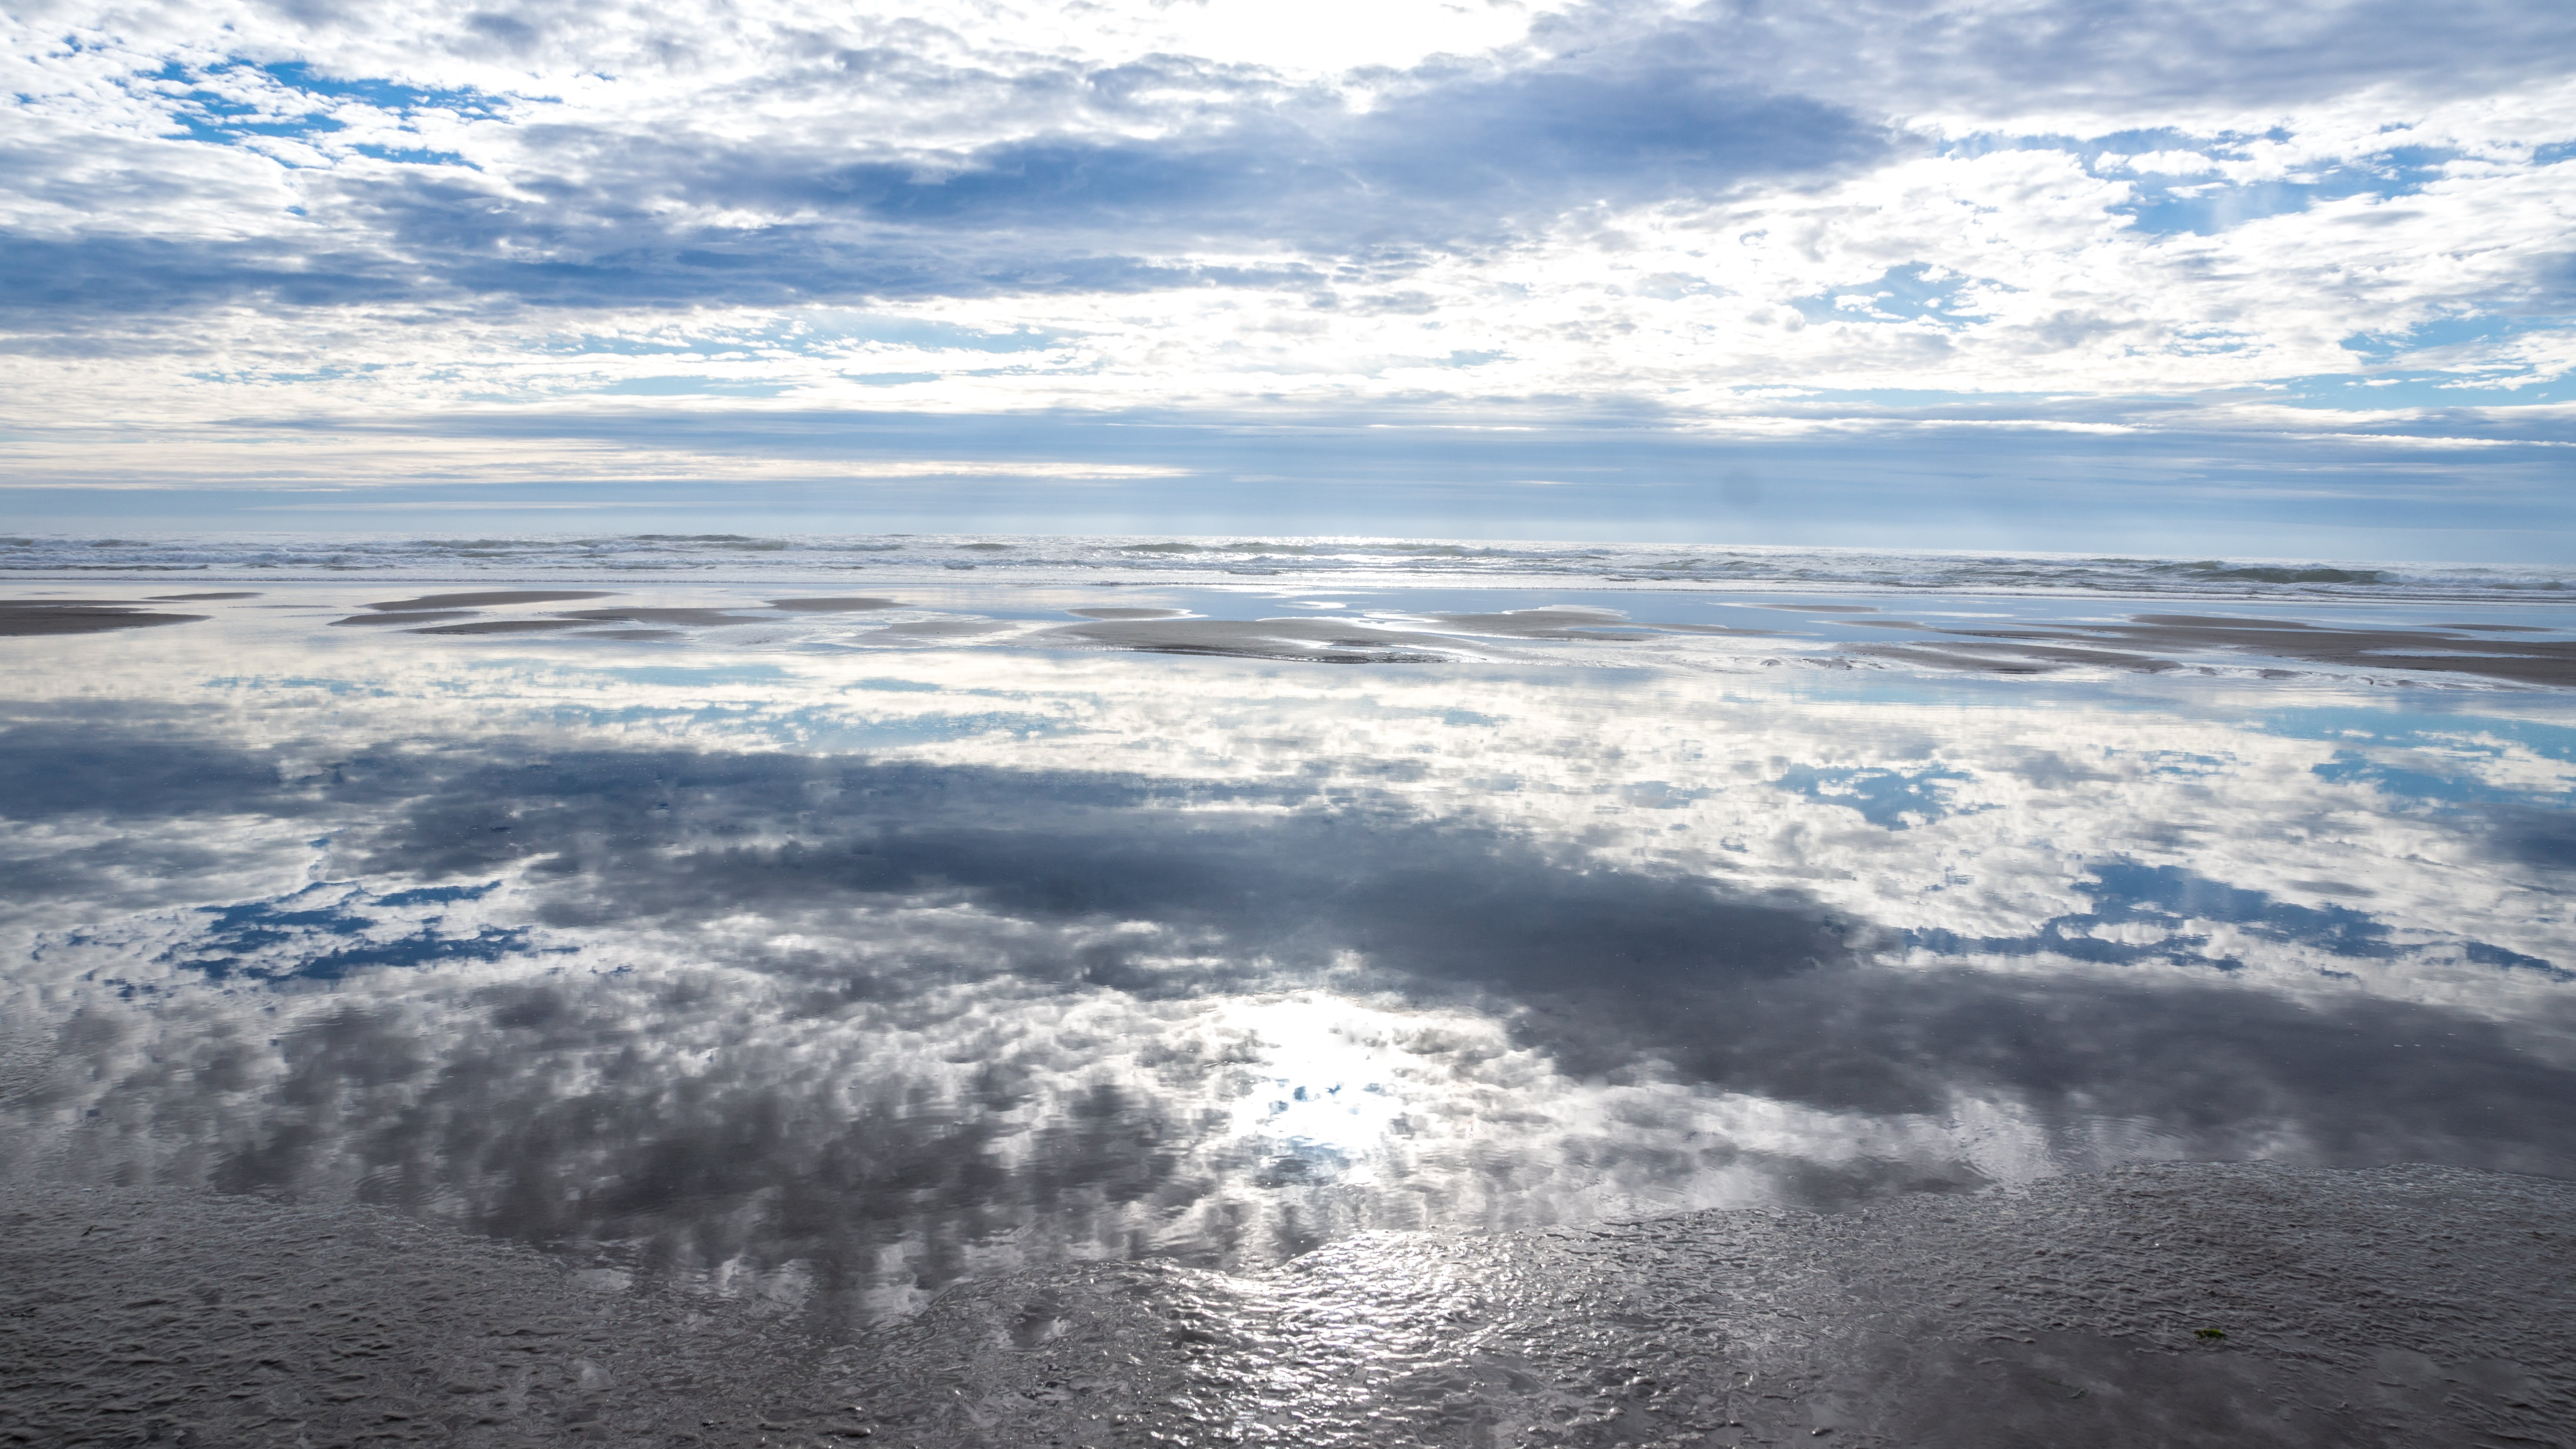 Free stock photo of beach, cloud reflection, clouds, cloudy